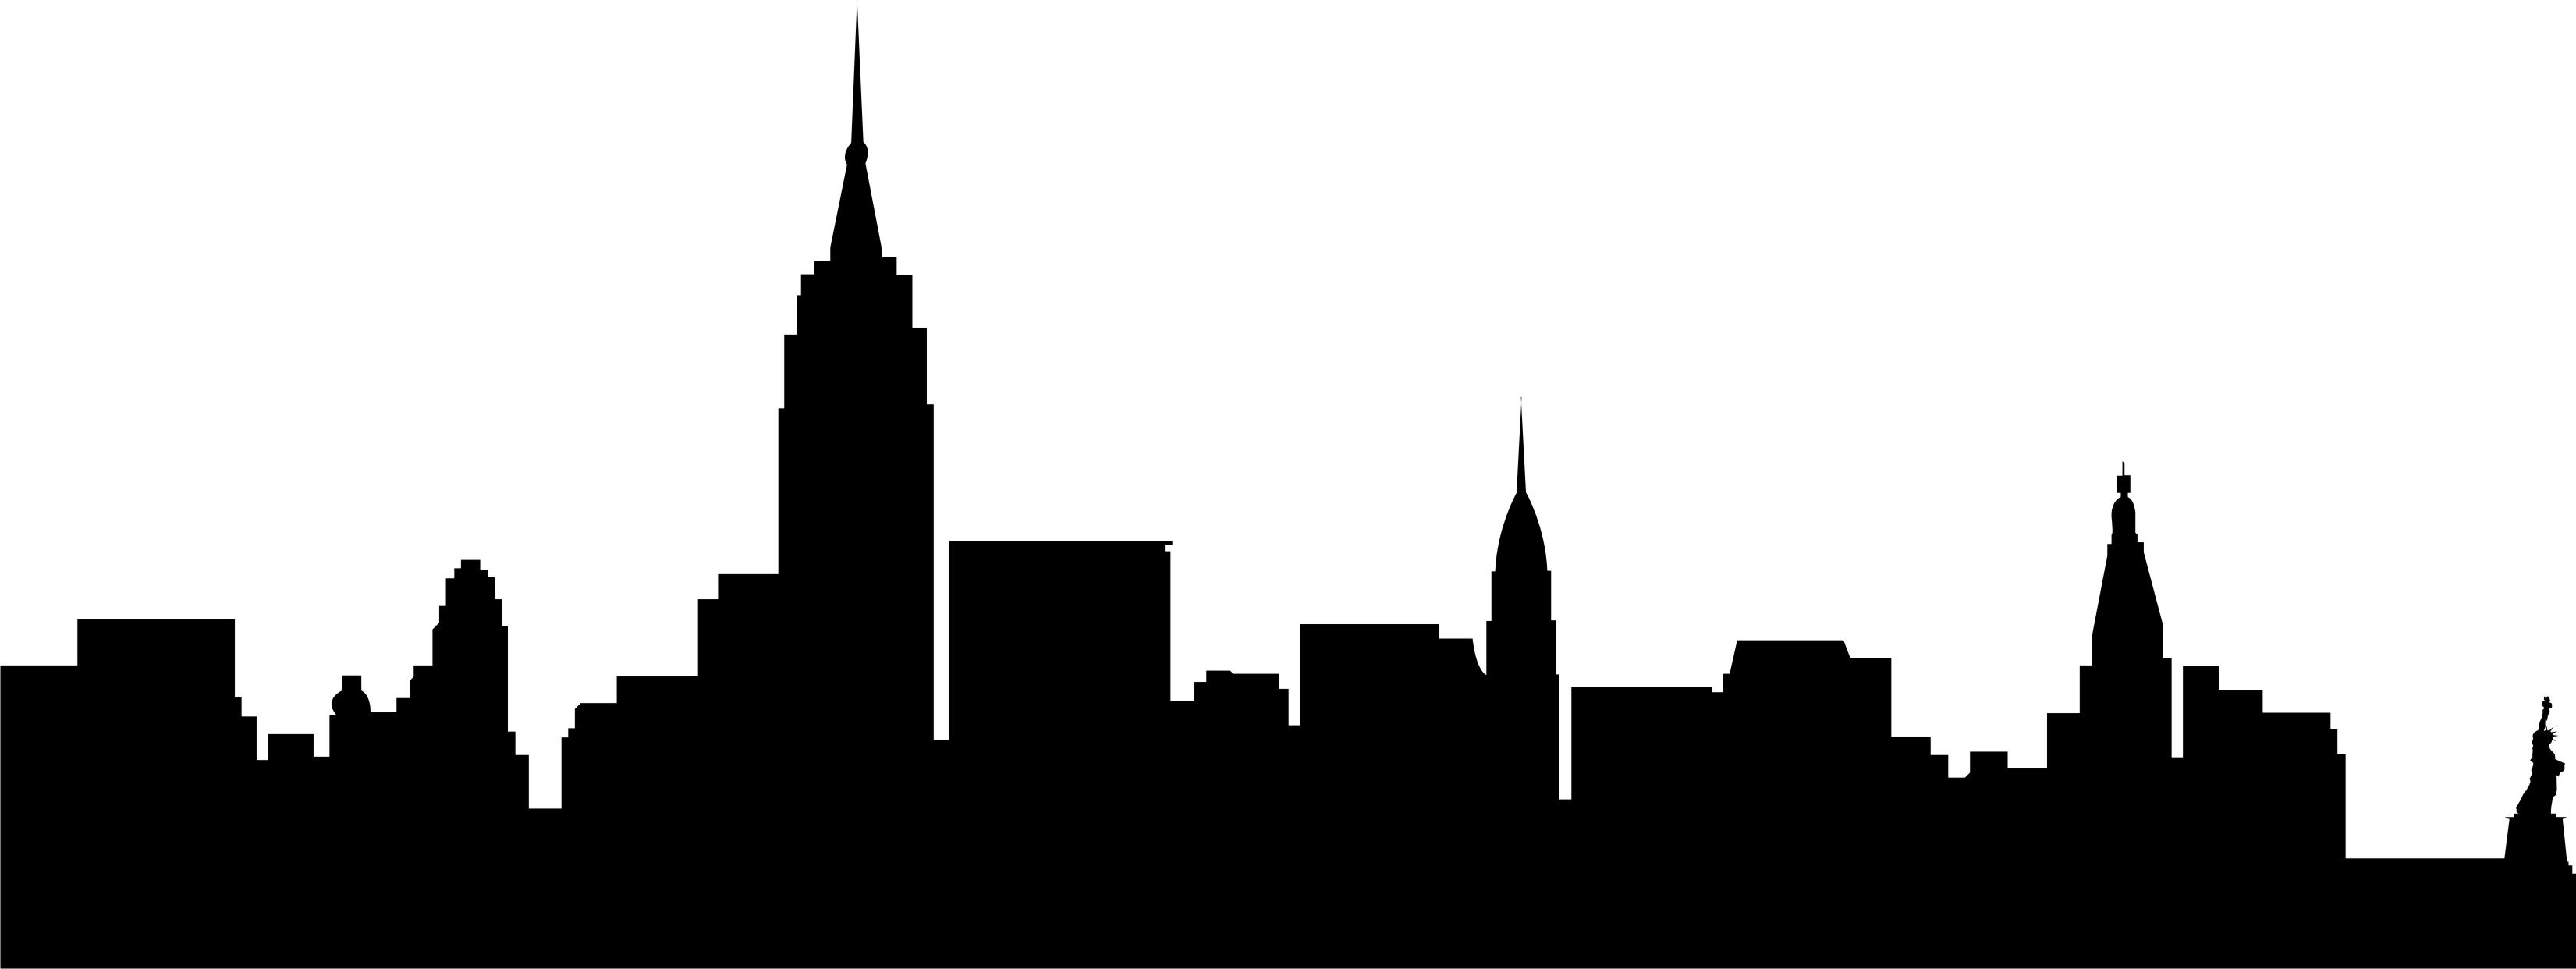 Details About City Skylines Wall Art Vinyl Sticker Decal Home